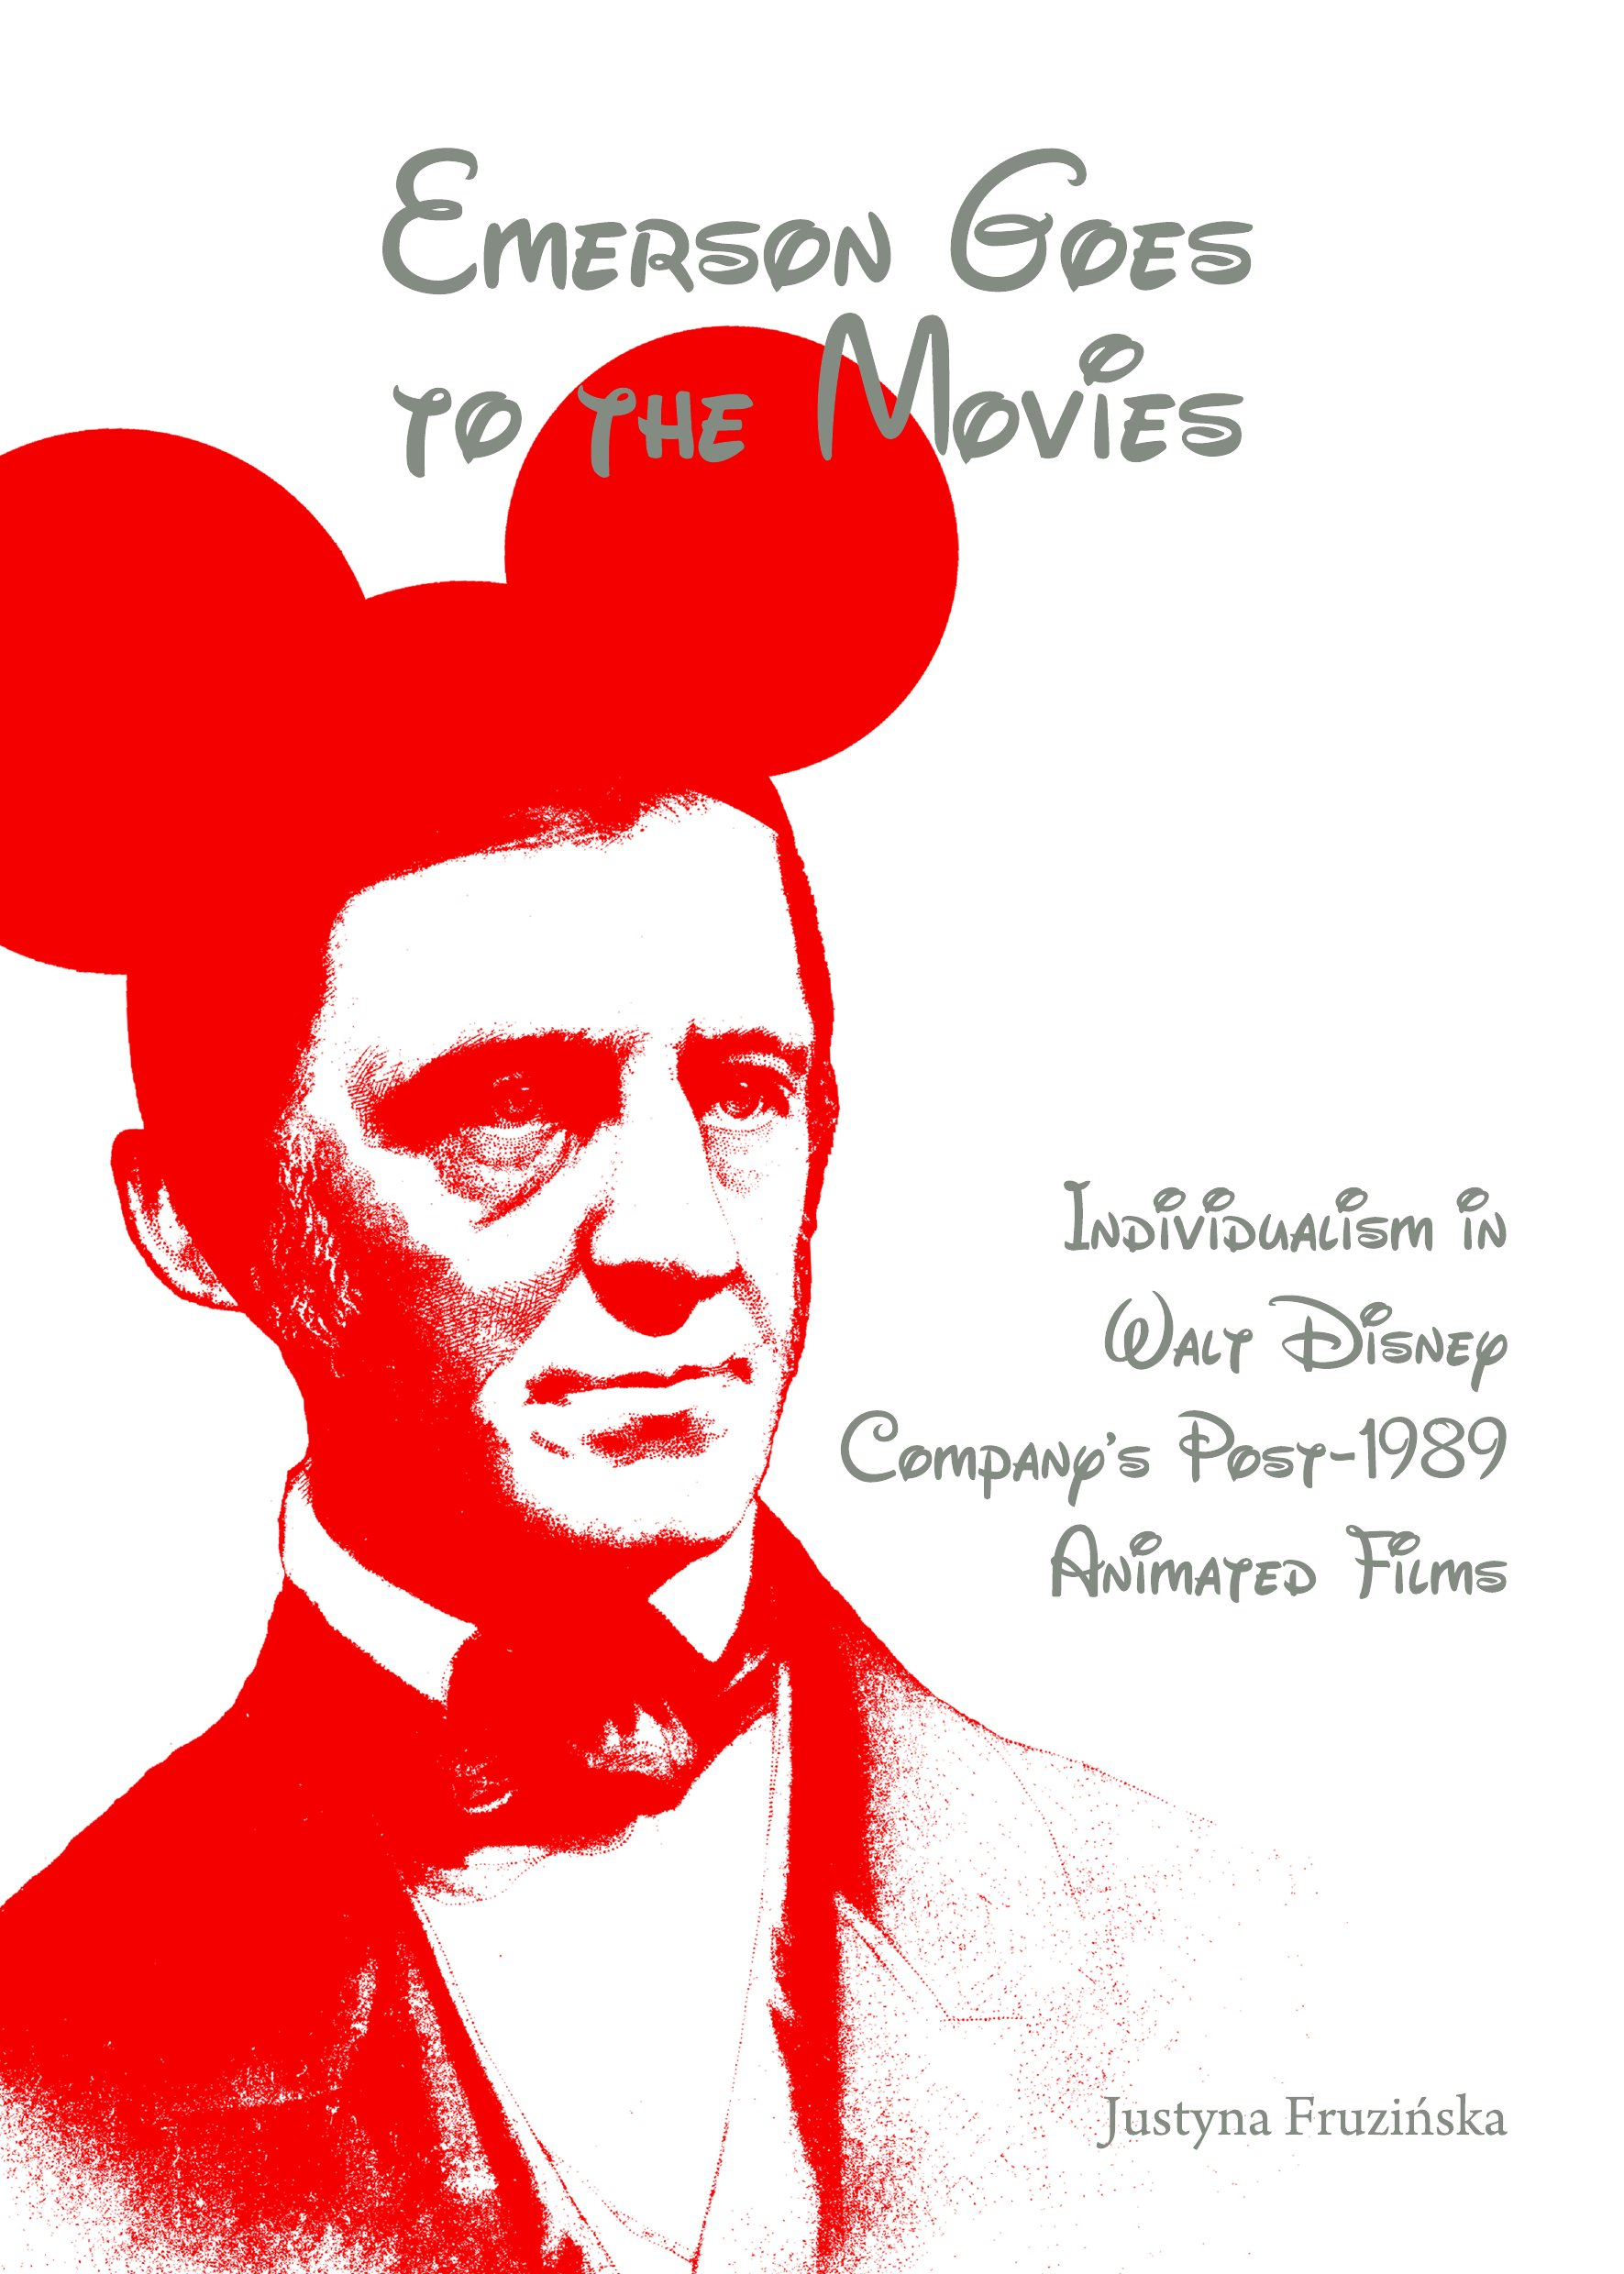 Emerson Goes to the Movies: Individualism in Walt Disney Company's Post-1989 Animated Films